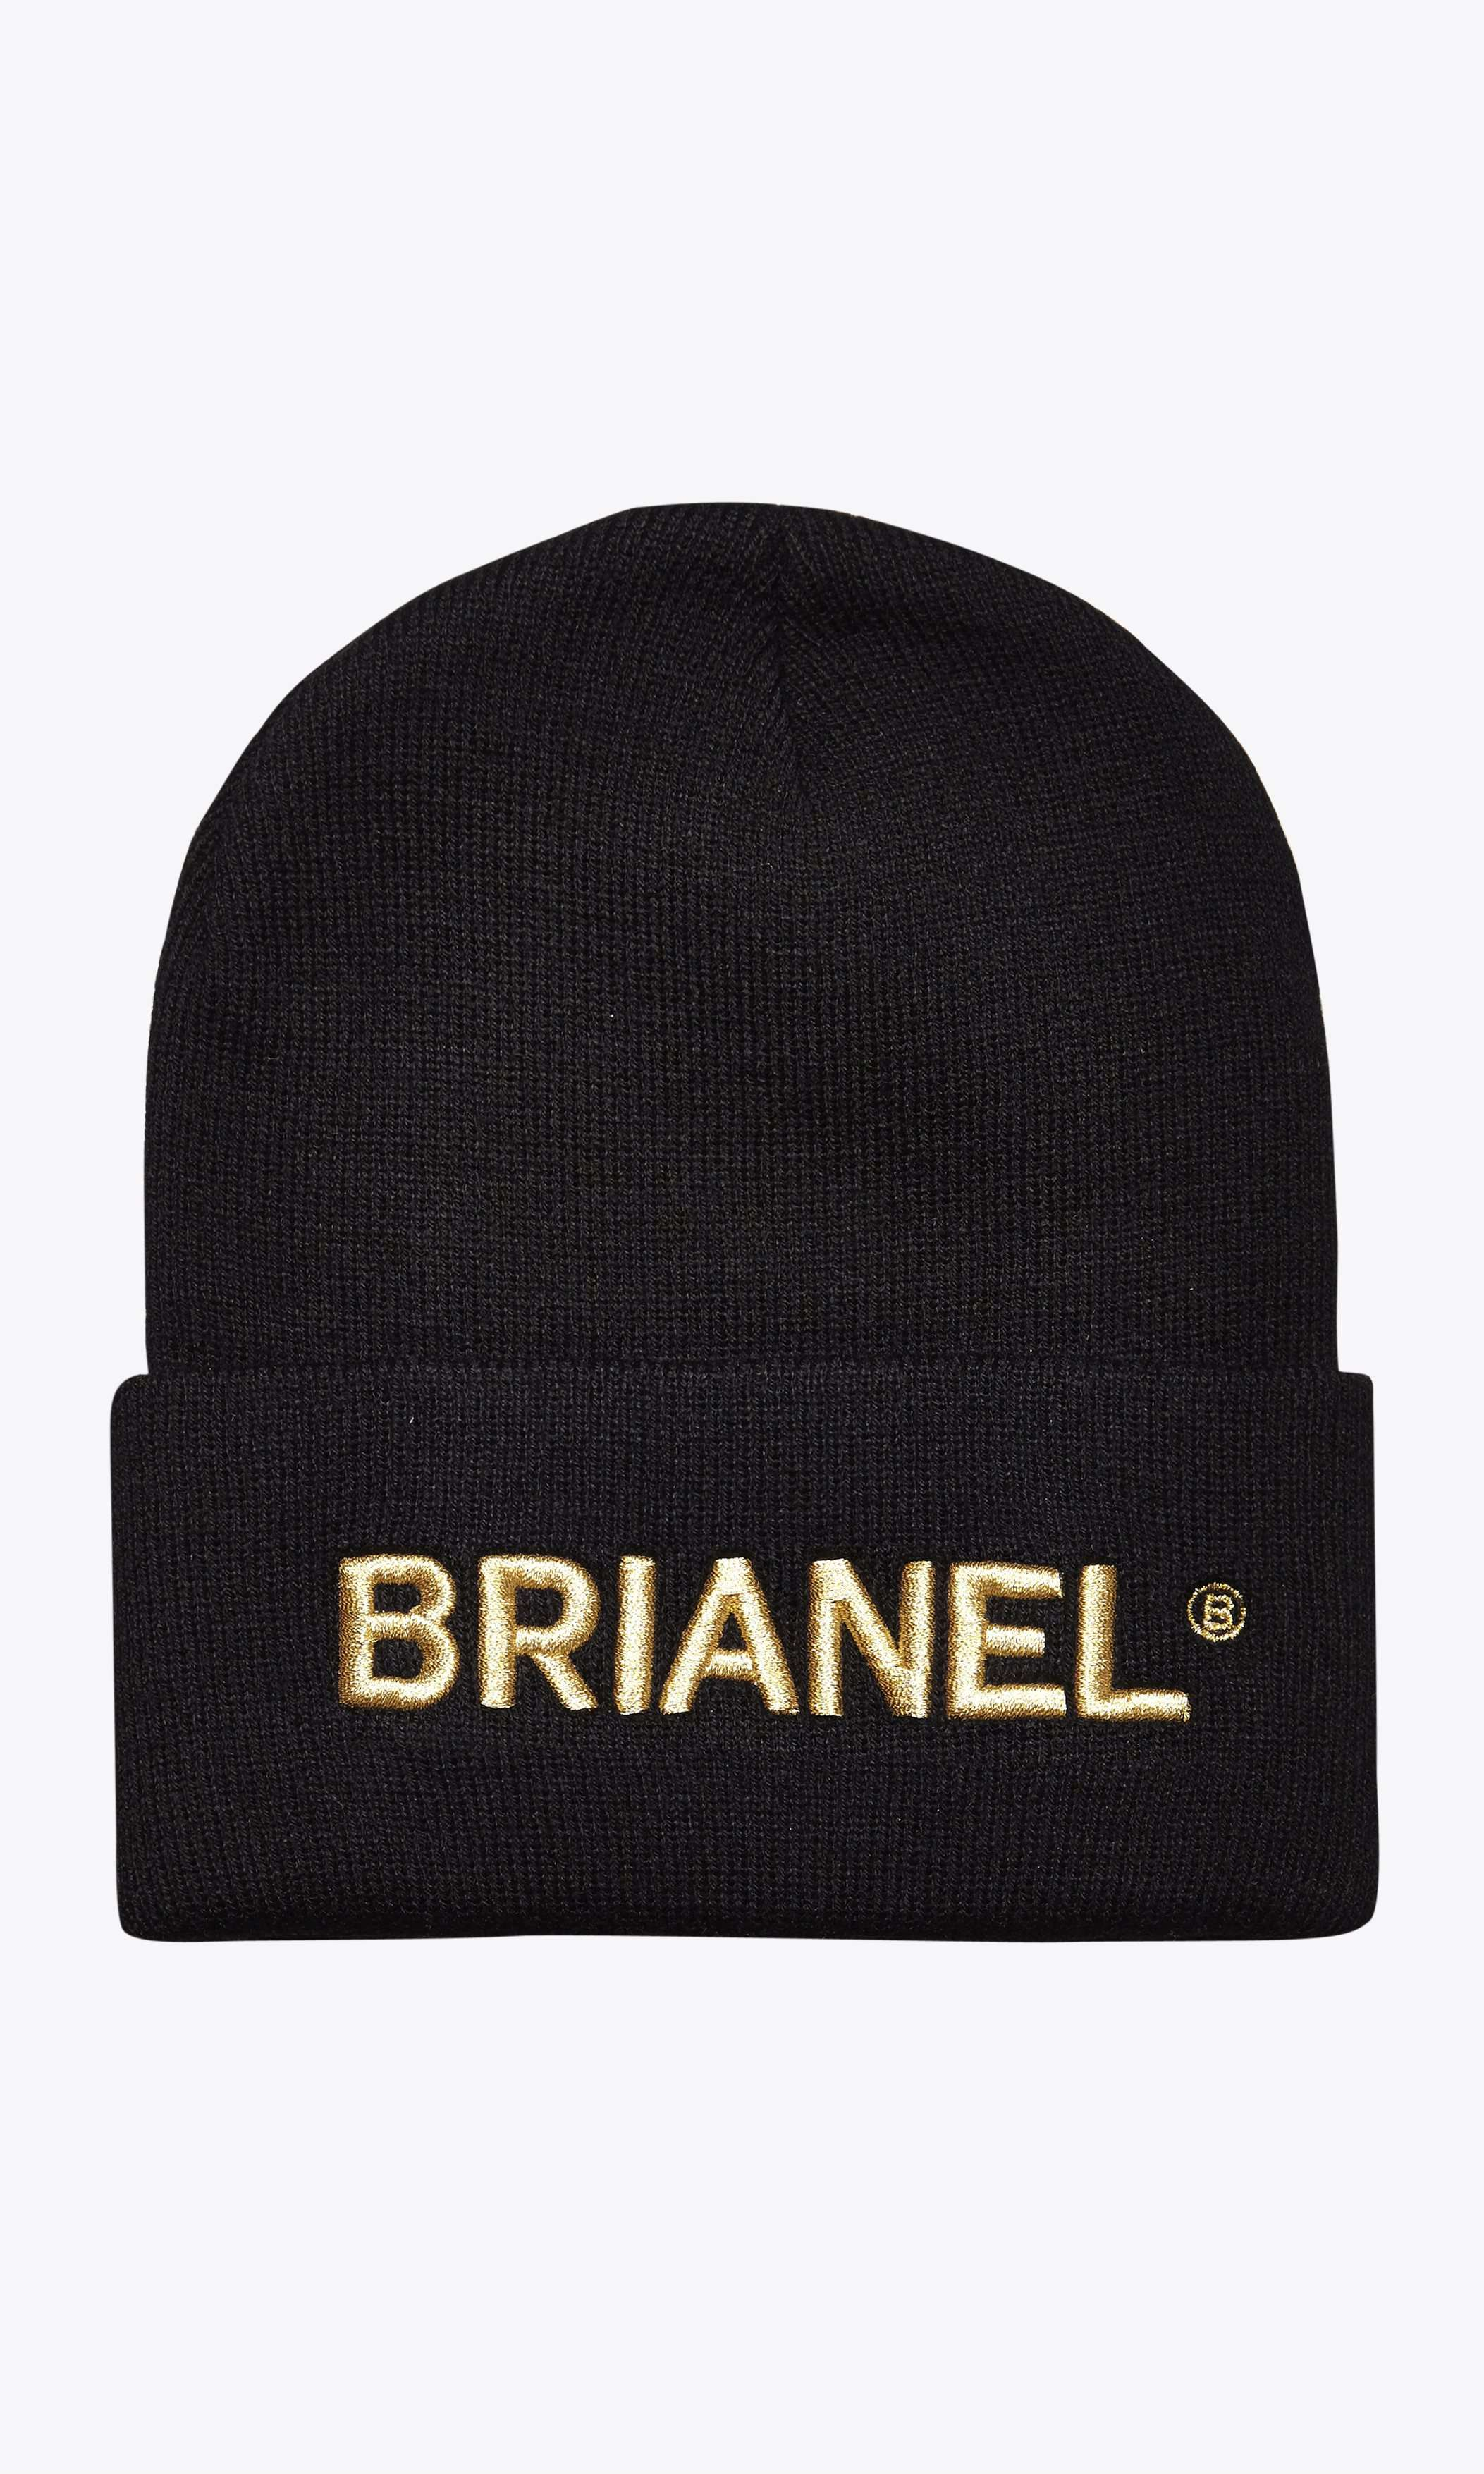 Image of   BRIANEL BEANIE HUE - SORT/HVID One Size